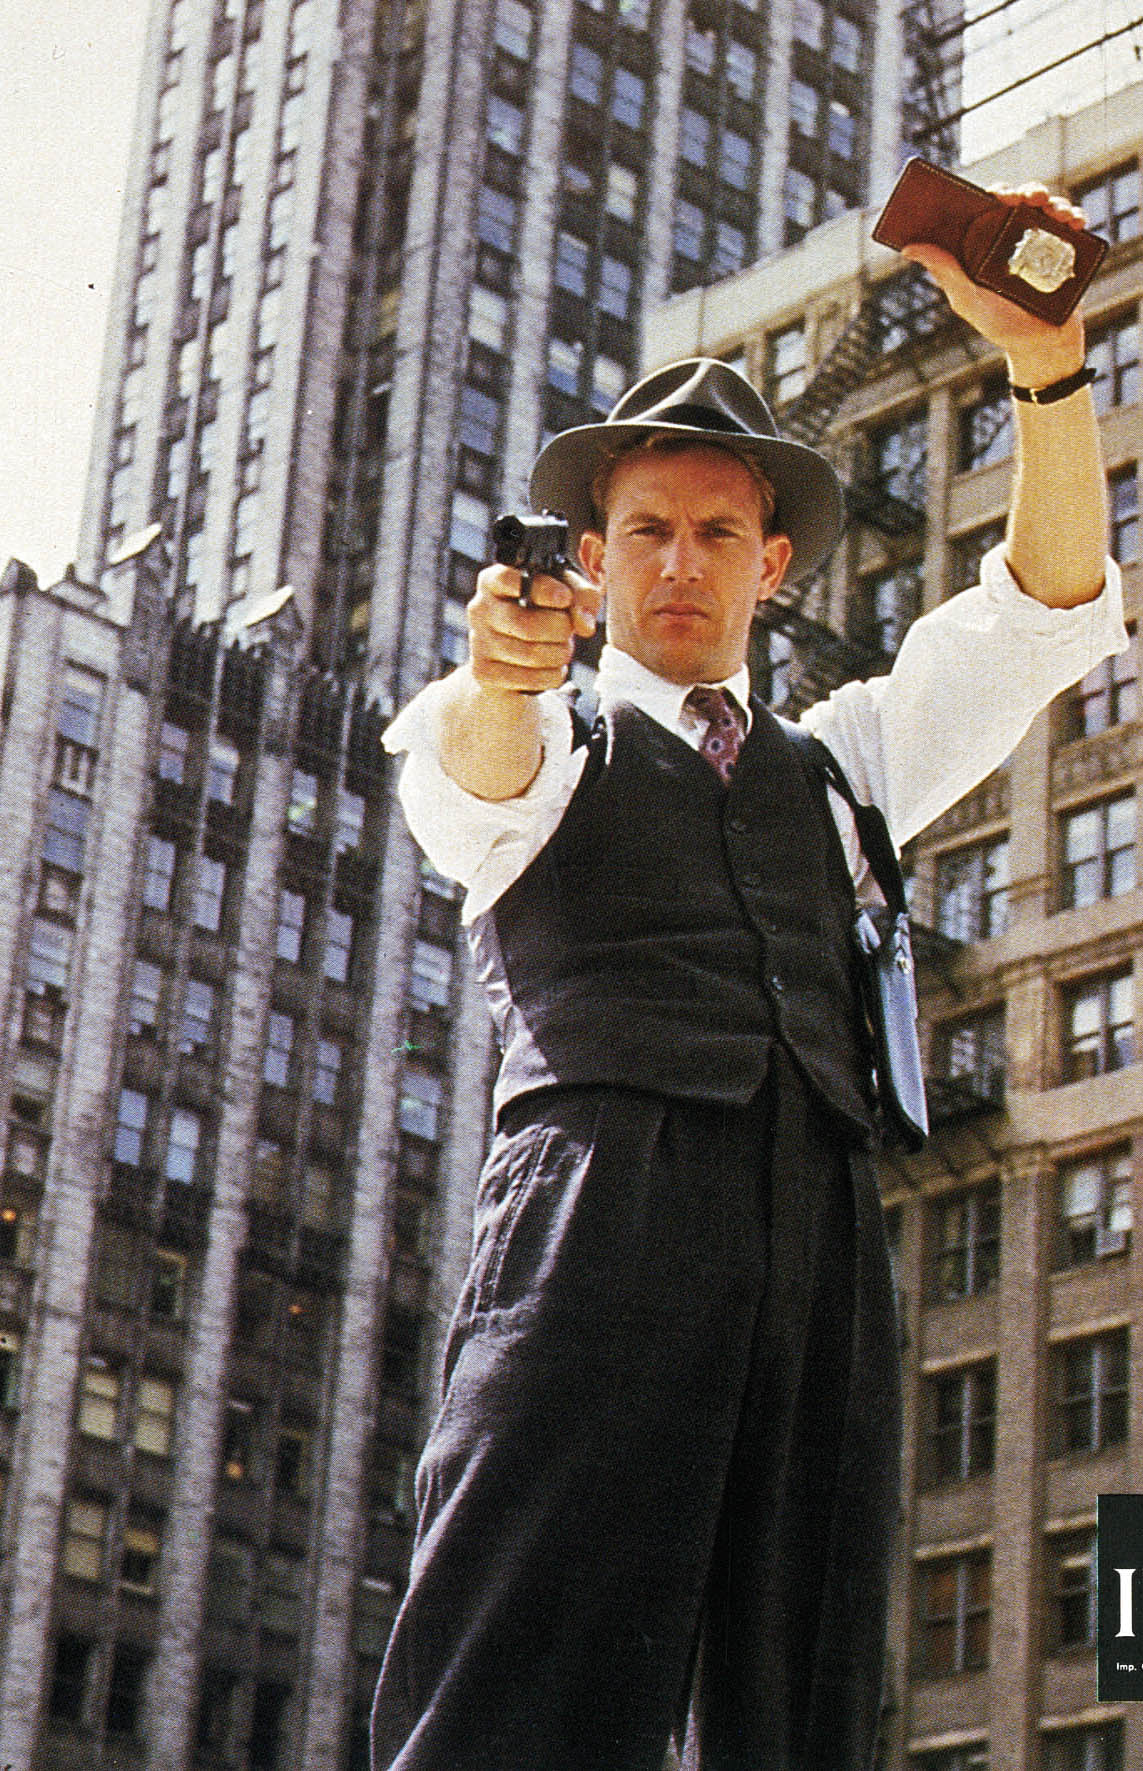 """Gate Agent Supervisor as Kevin Costner as Eliot Ness in """"The Untouchables"""""""